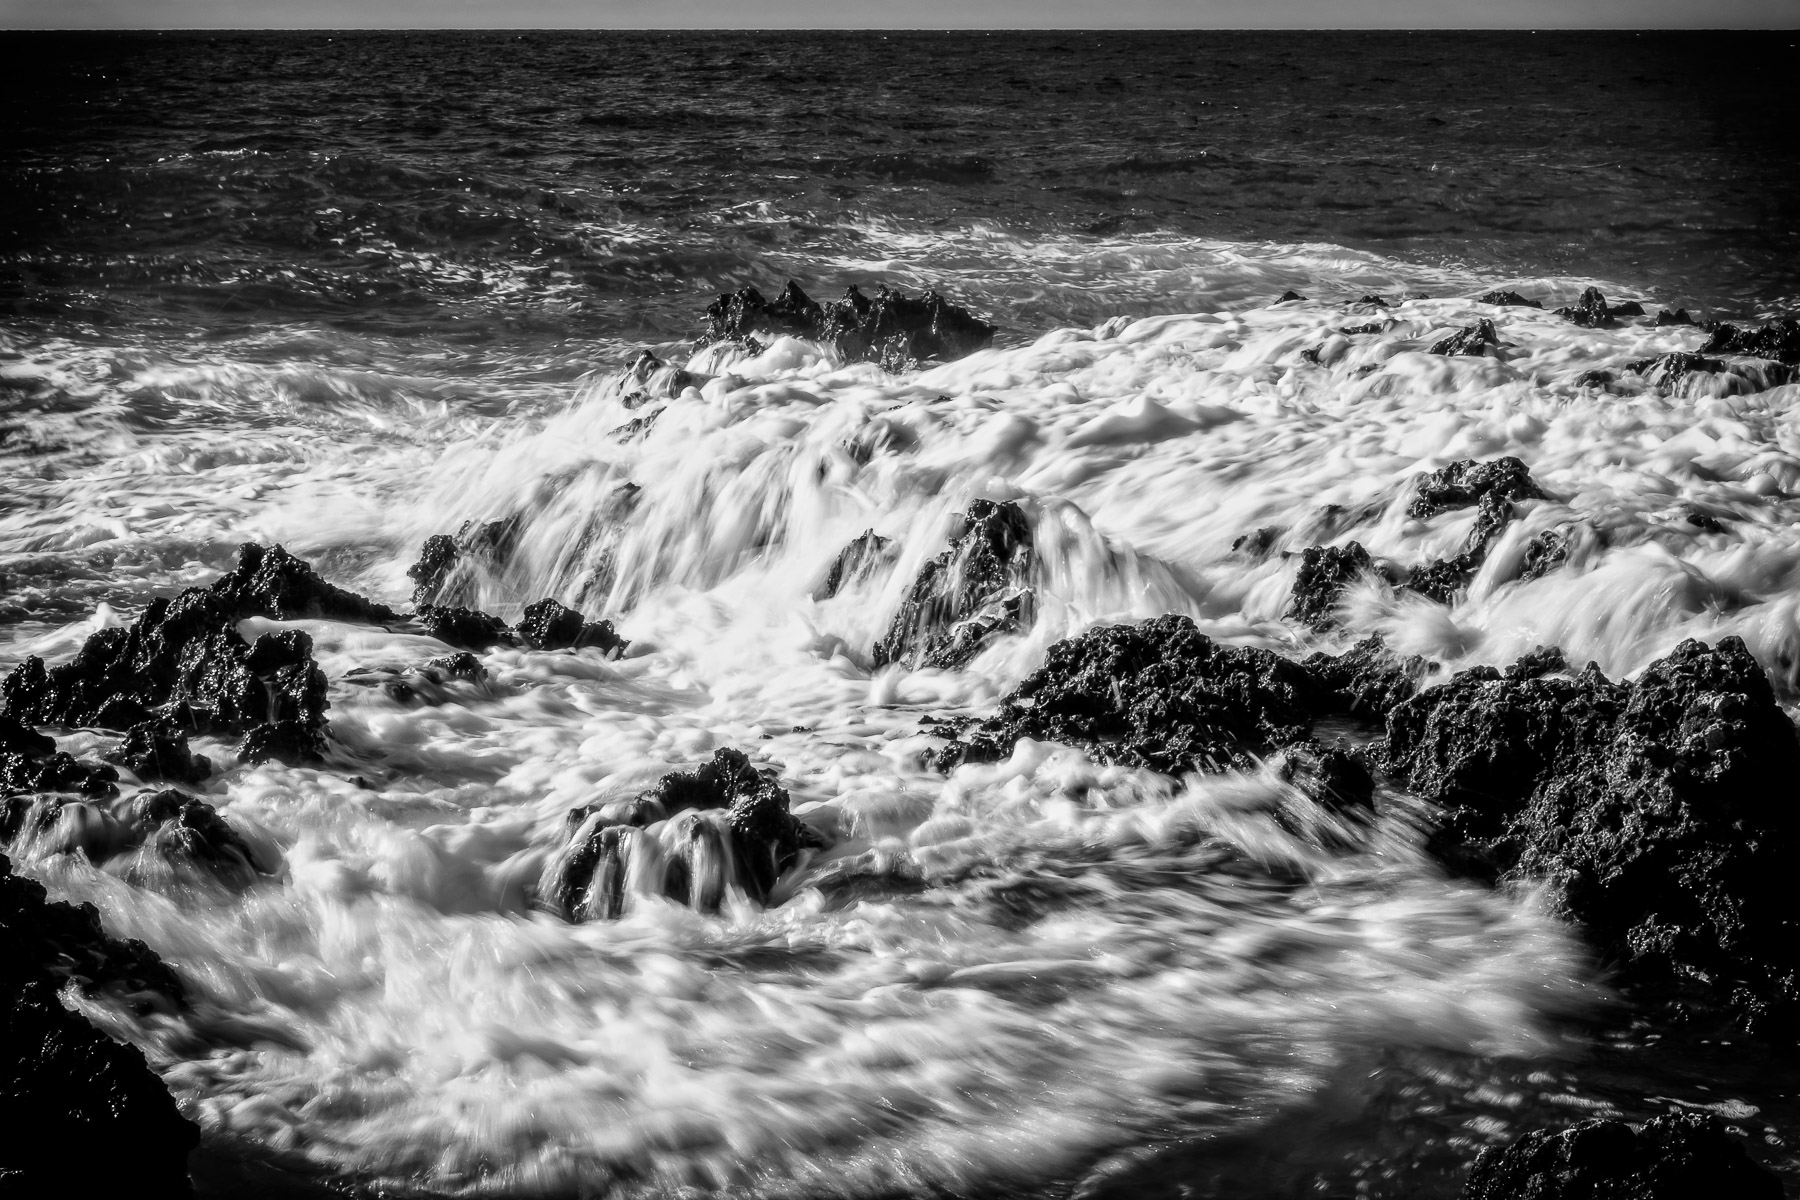 Caribbean Sea waves froth over rocks at Turtle Reef at West Bay, Grand Cayman.